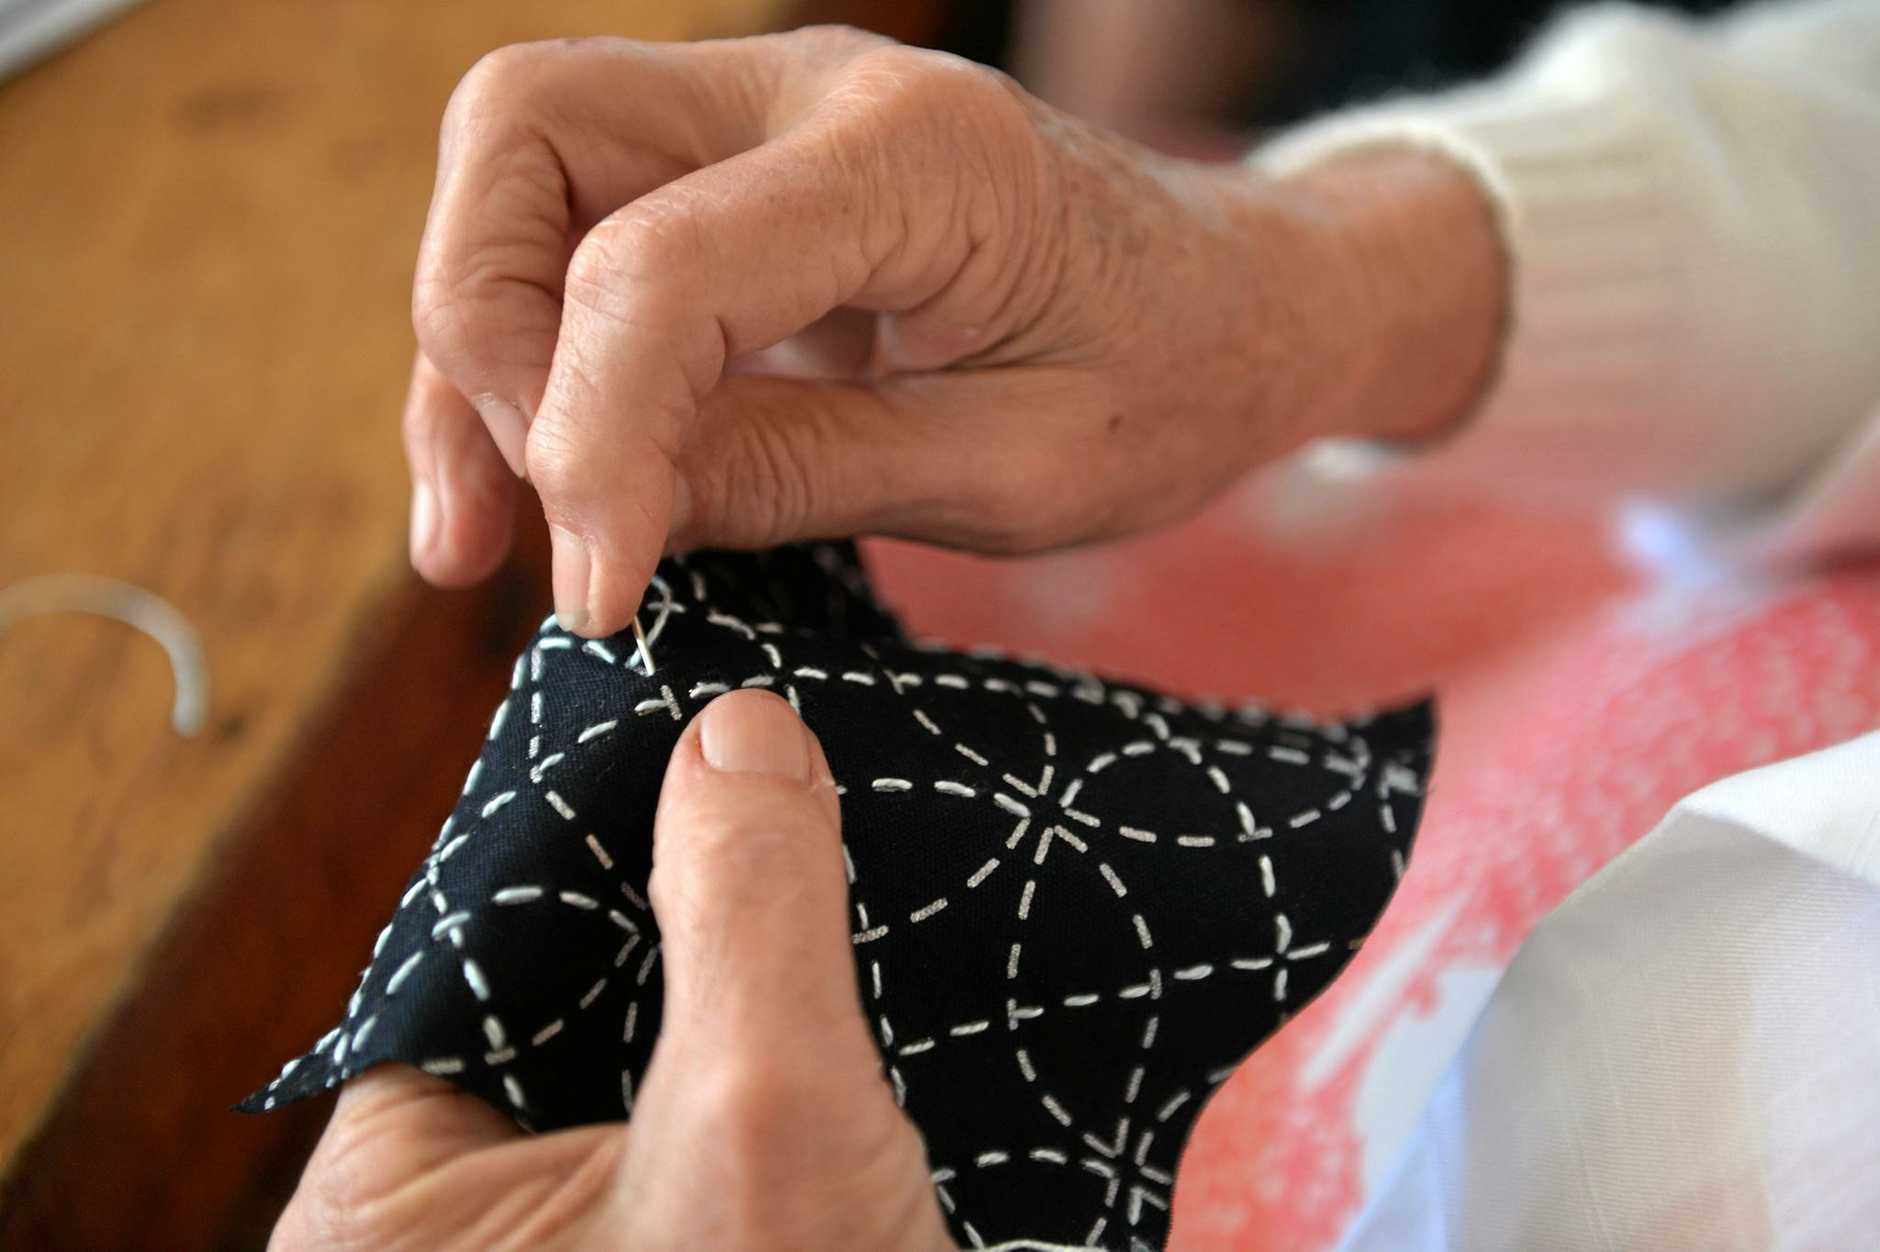 A piece of Sashiko being worked on.